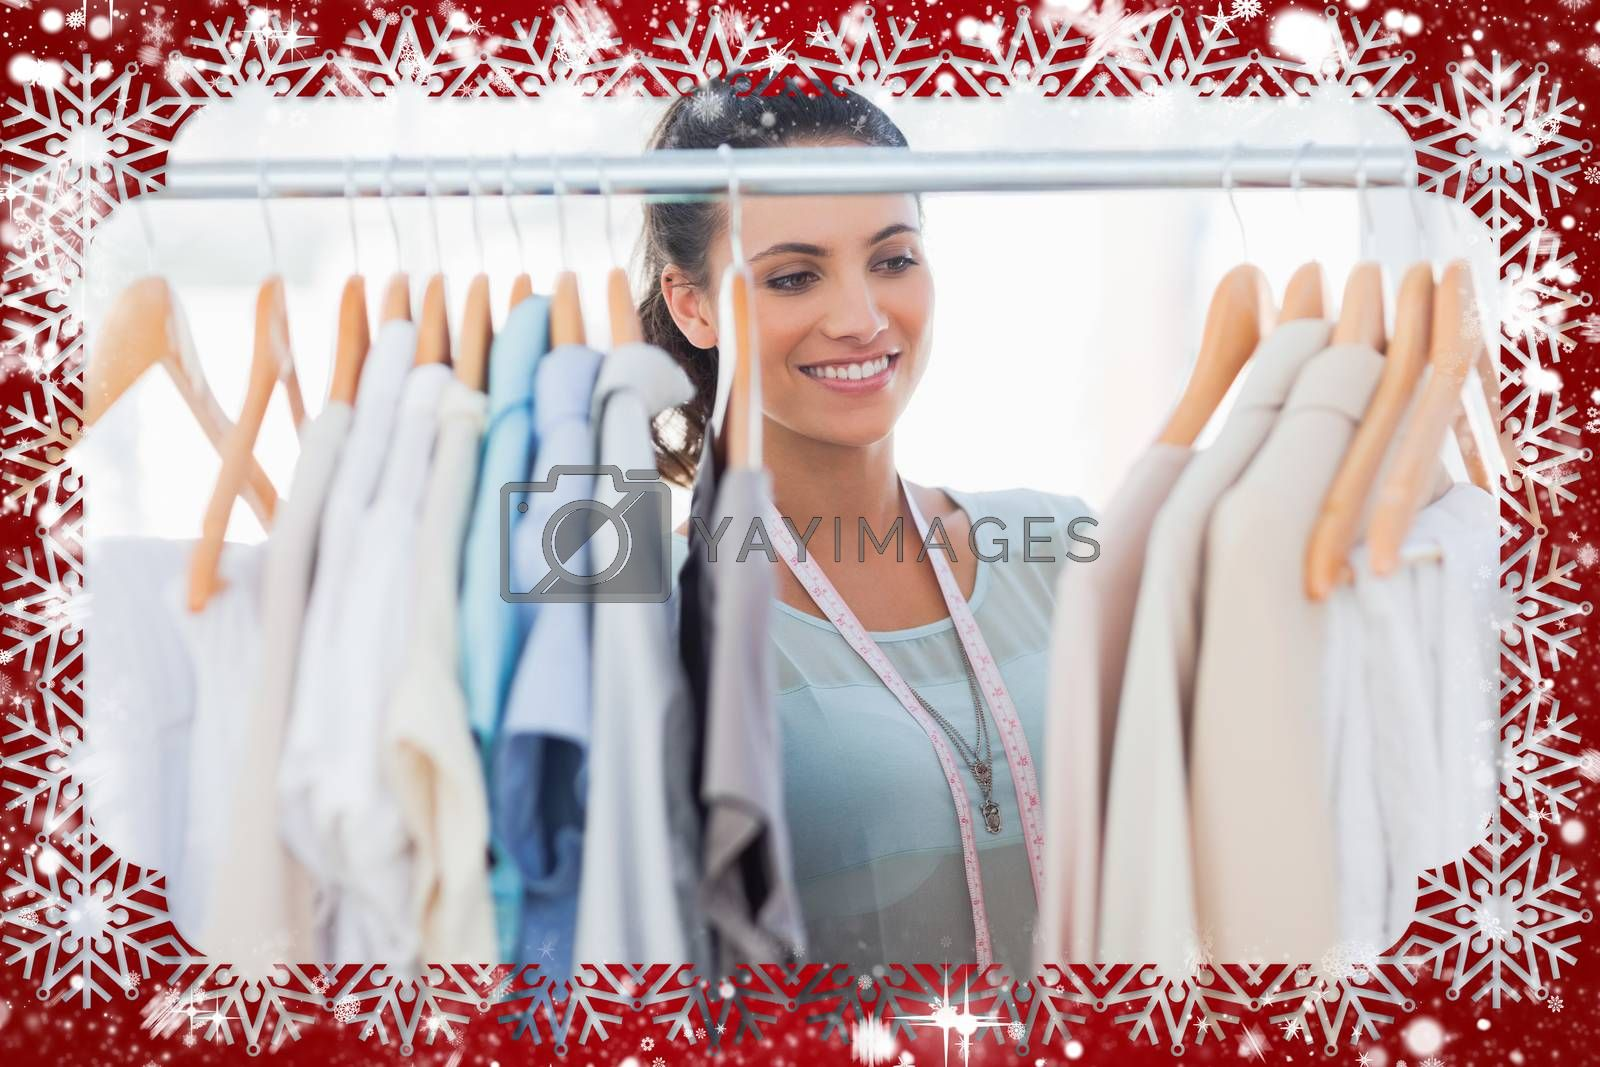 Attractive fashion designer looking at clothes against snow